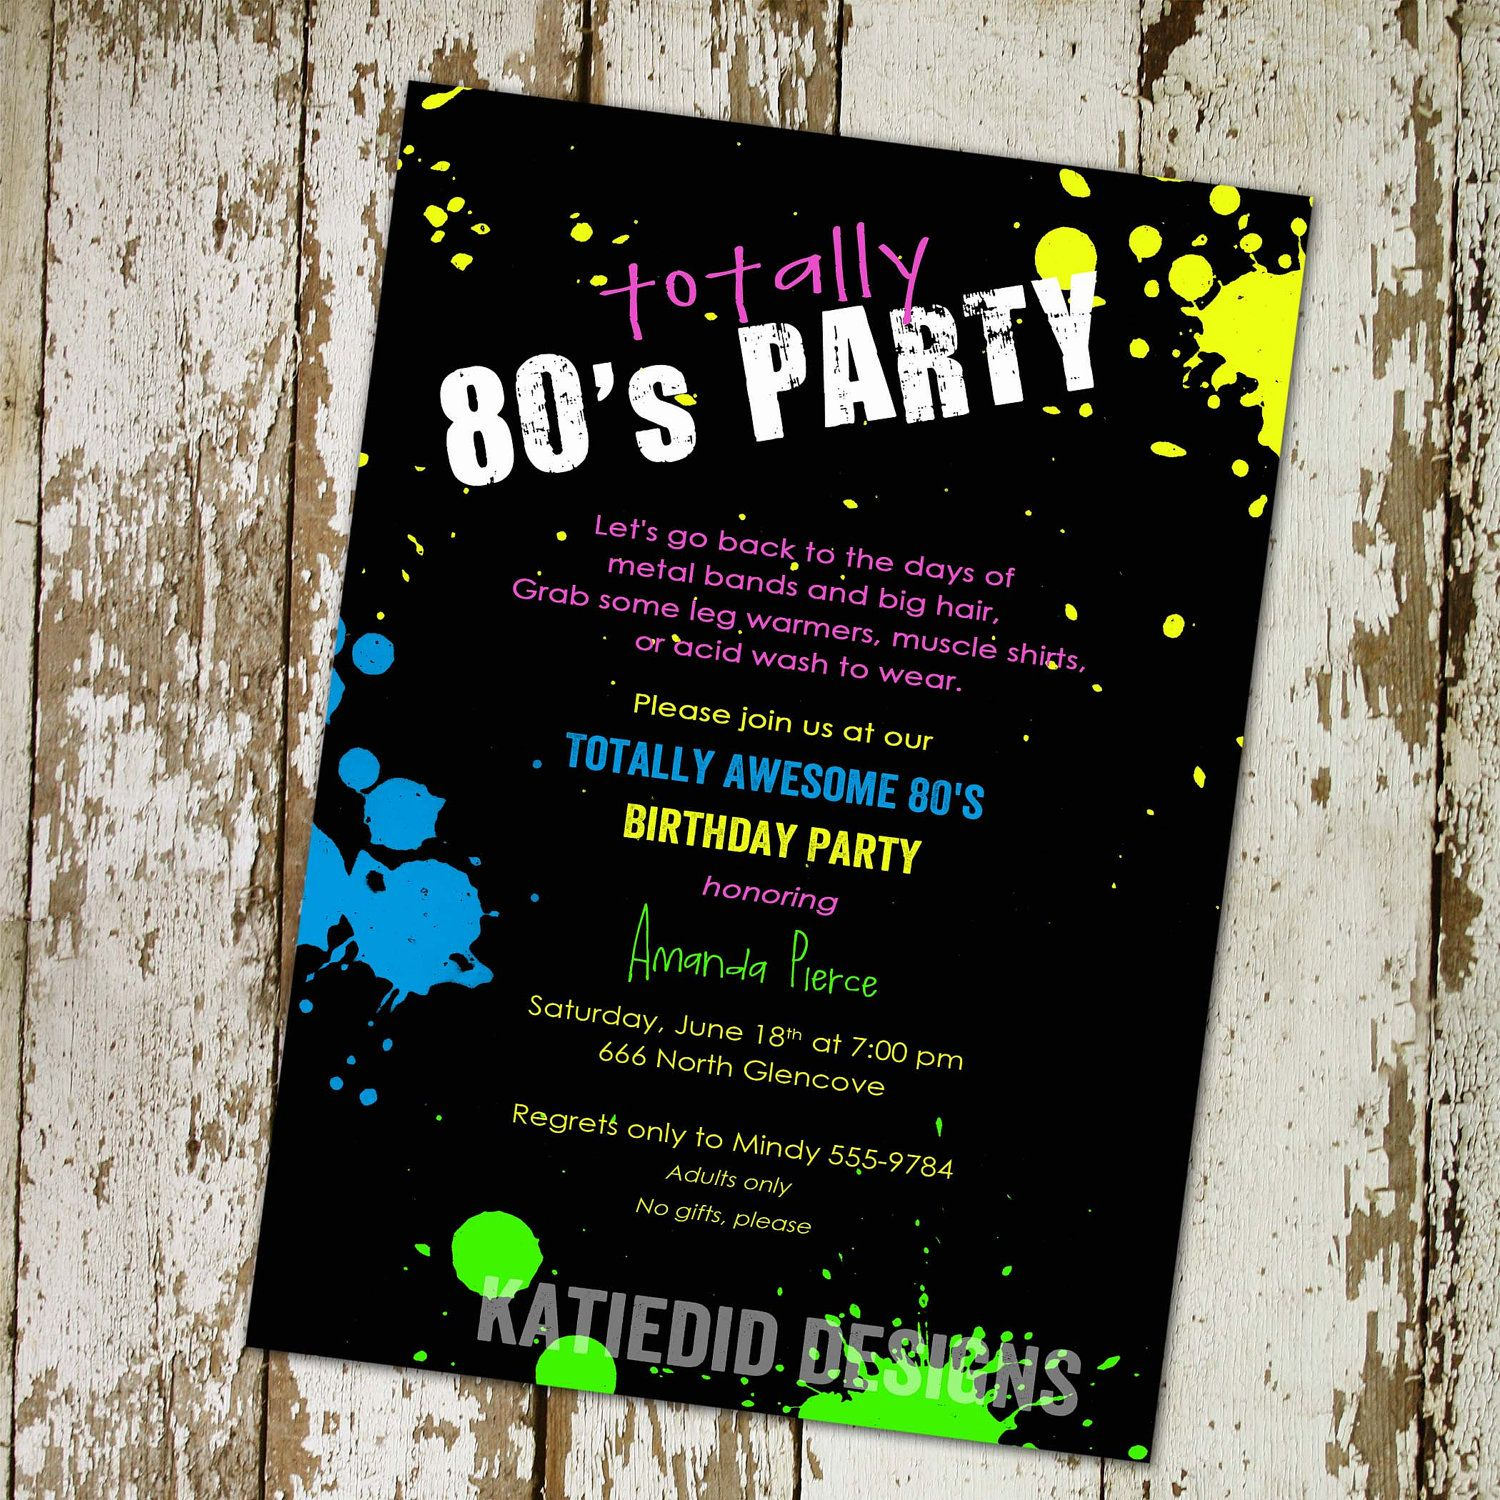 80s themed birthday party invitations Totally 80s party digital – 80s Theme Party Invitations